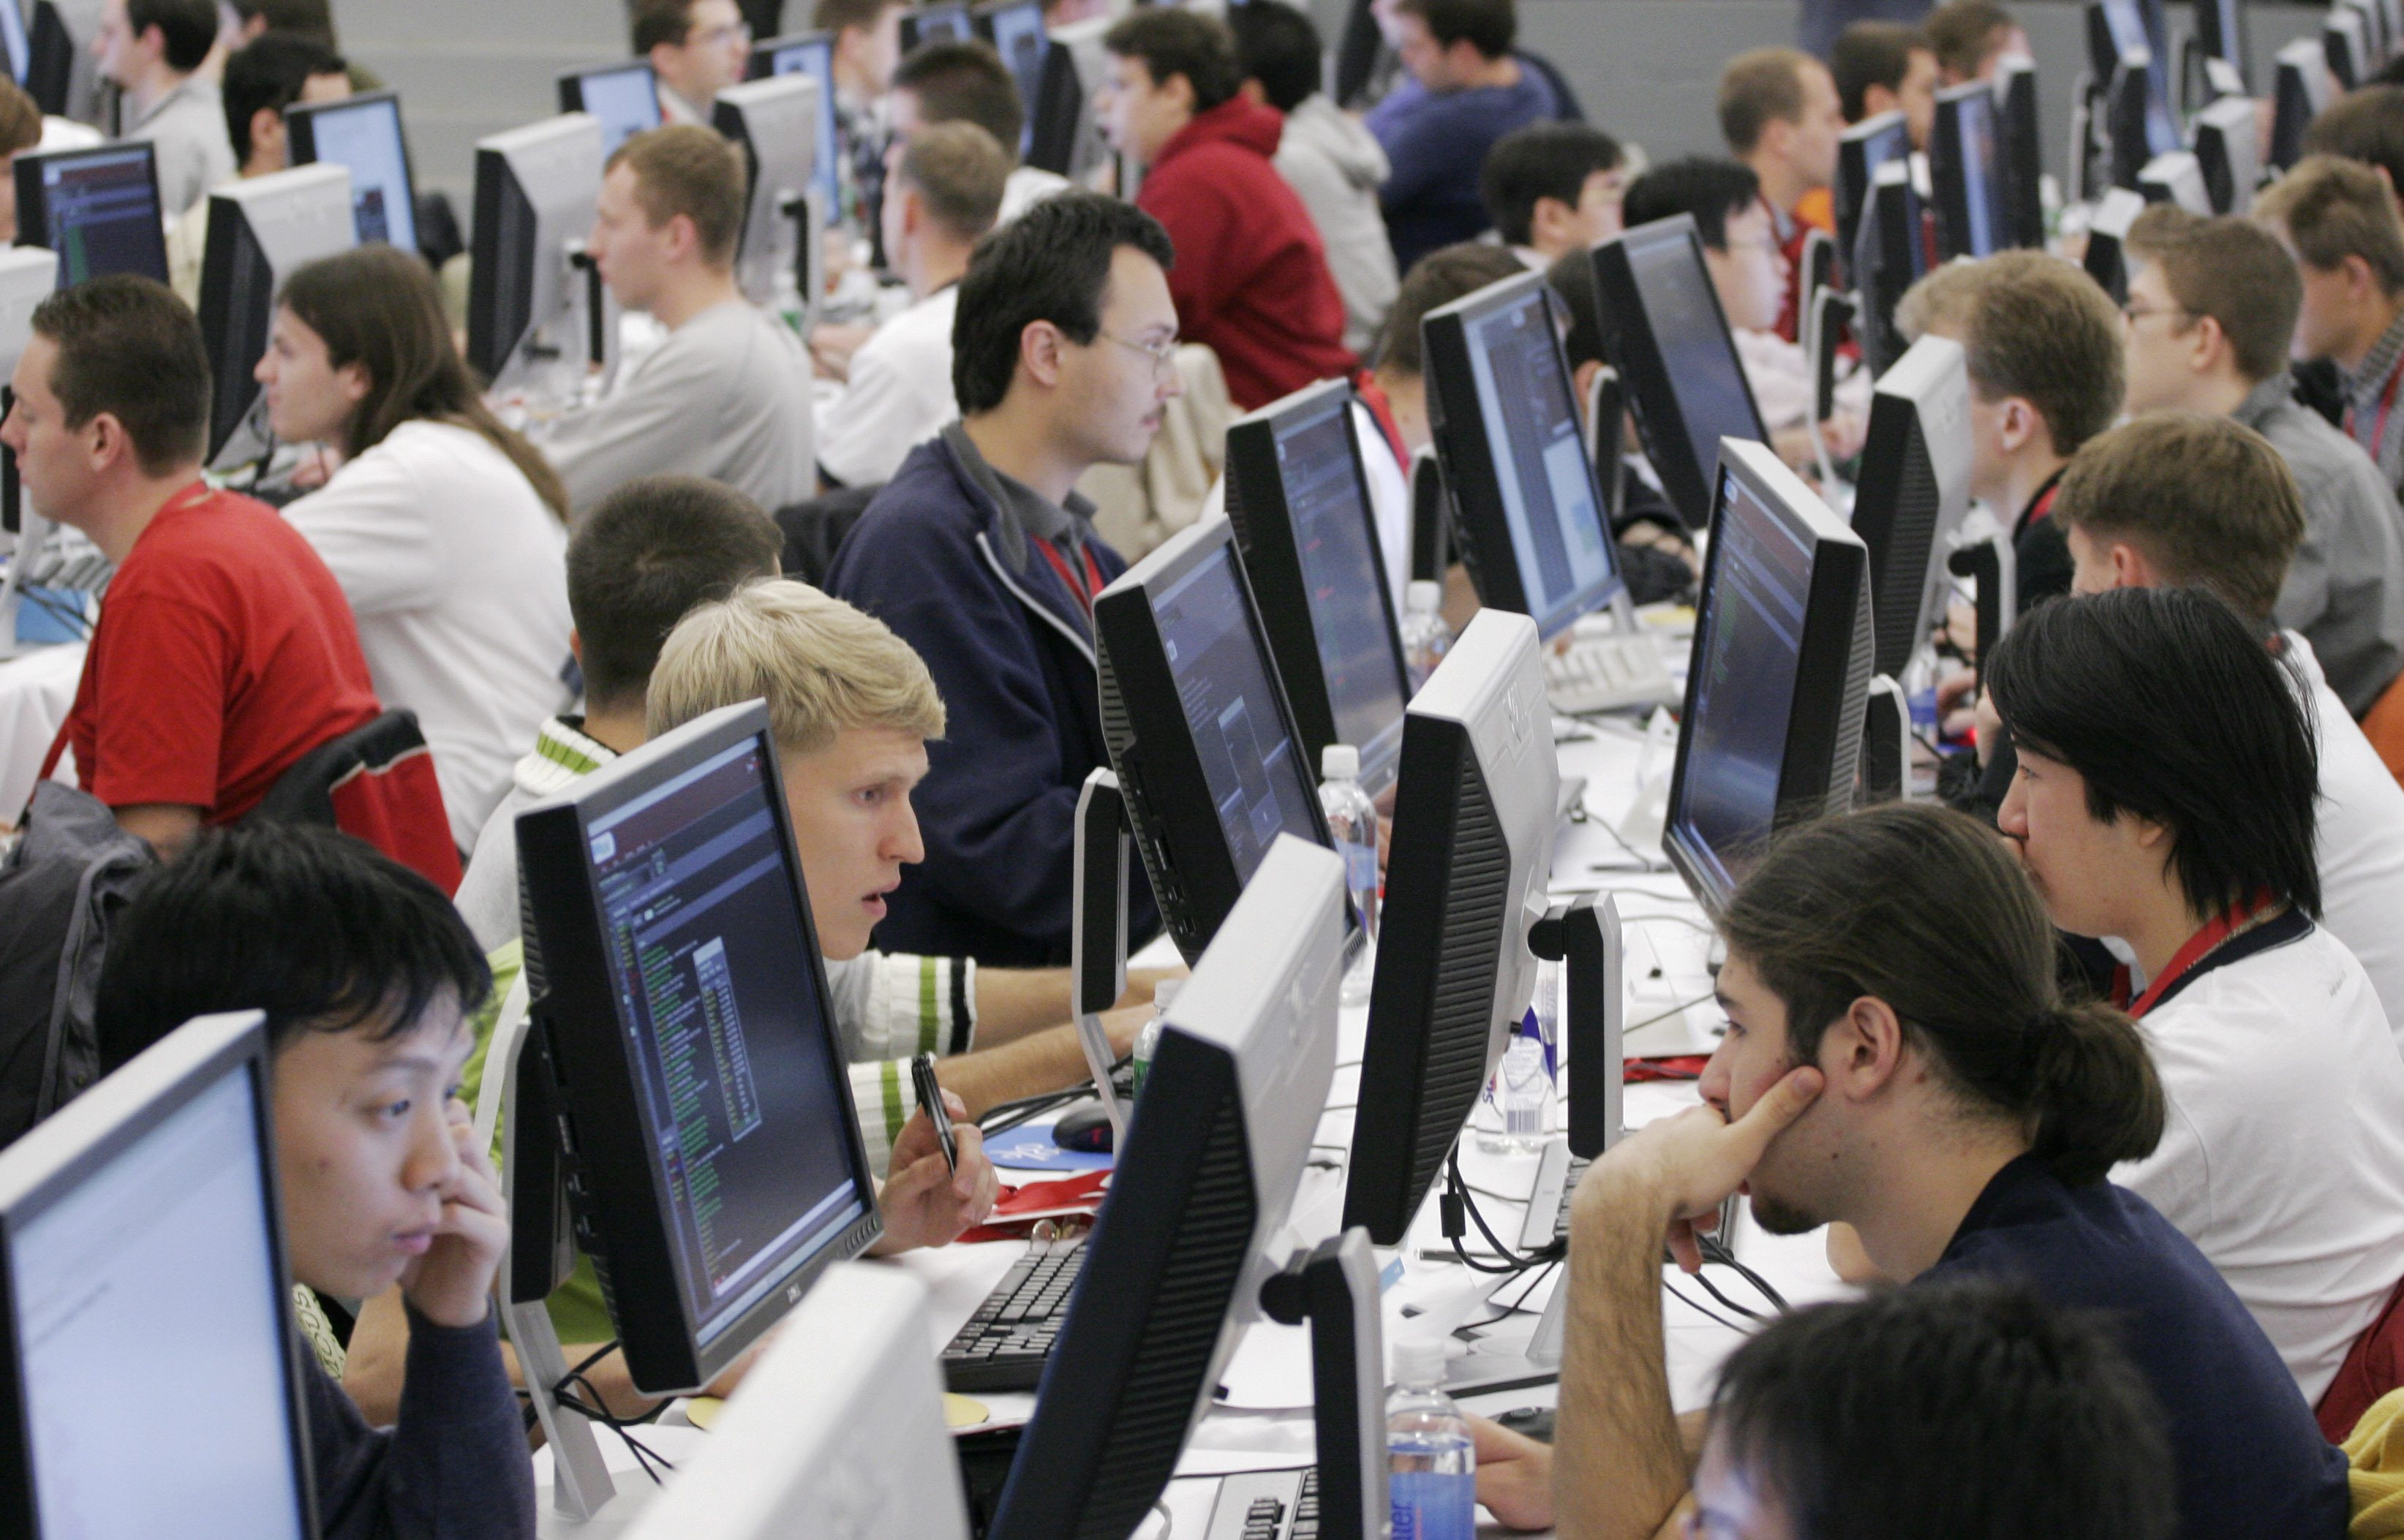 Contestants in the 2006 Google Global Code Jam stare at their computer screens at Google's New York office Friday, Oct. 27, 2006. One hundred of the best computer coders from around the world compete for prize money and bragging rights. The finalists from 20 countries are flown to New York by Google for the competition. (AP Photo/Mark Lennihan)